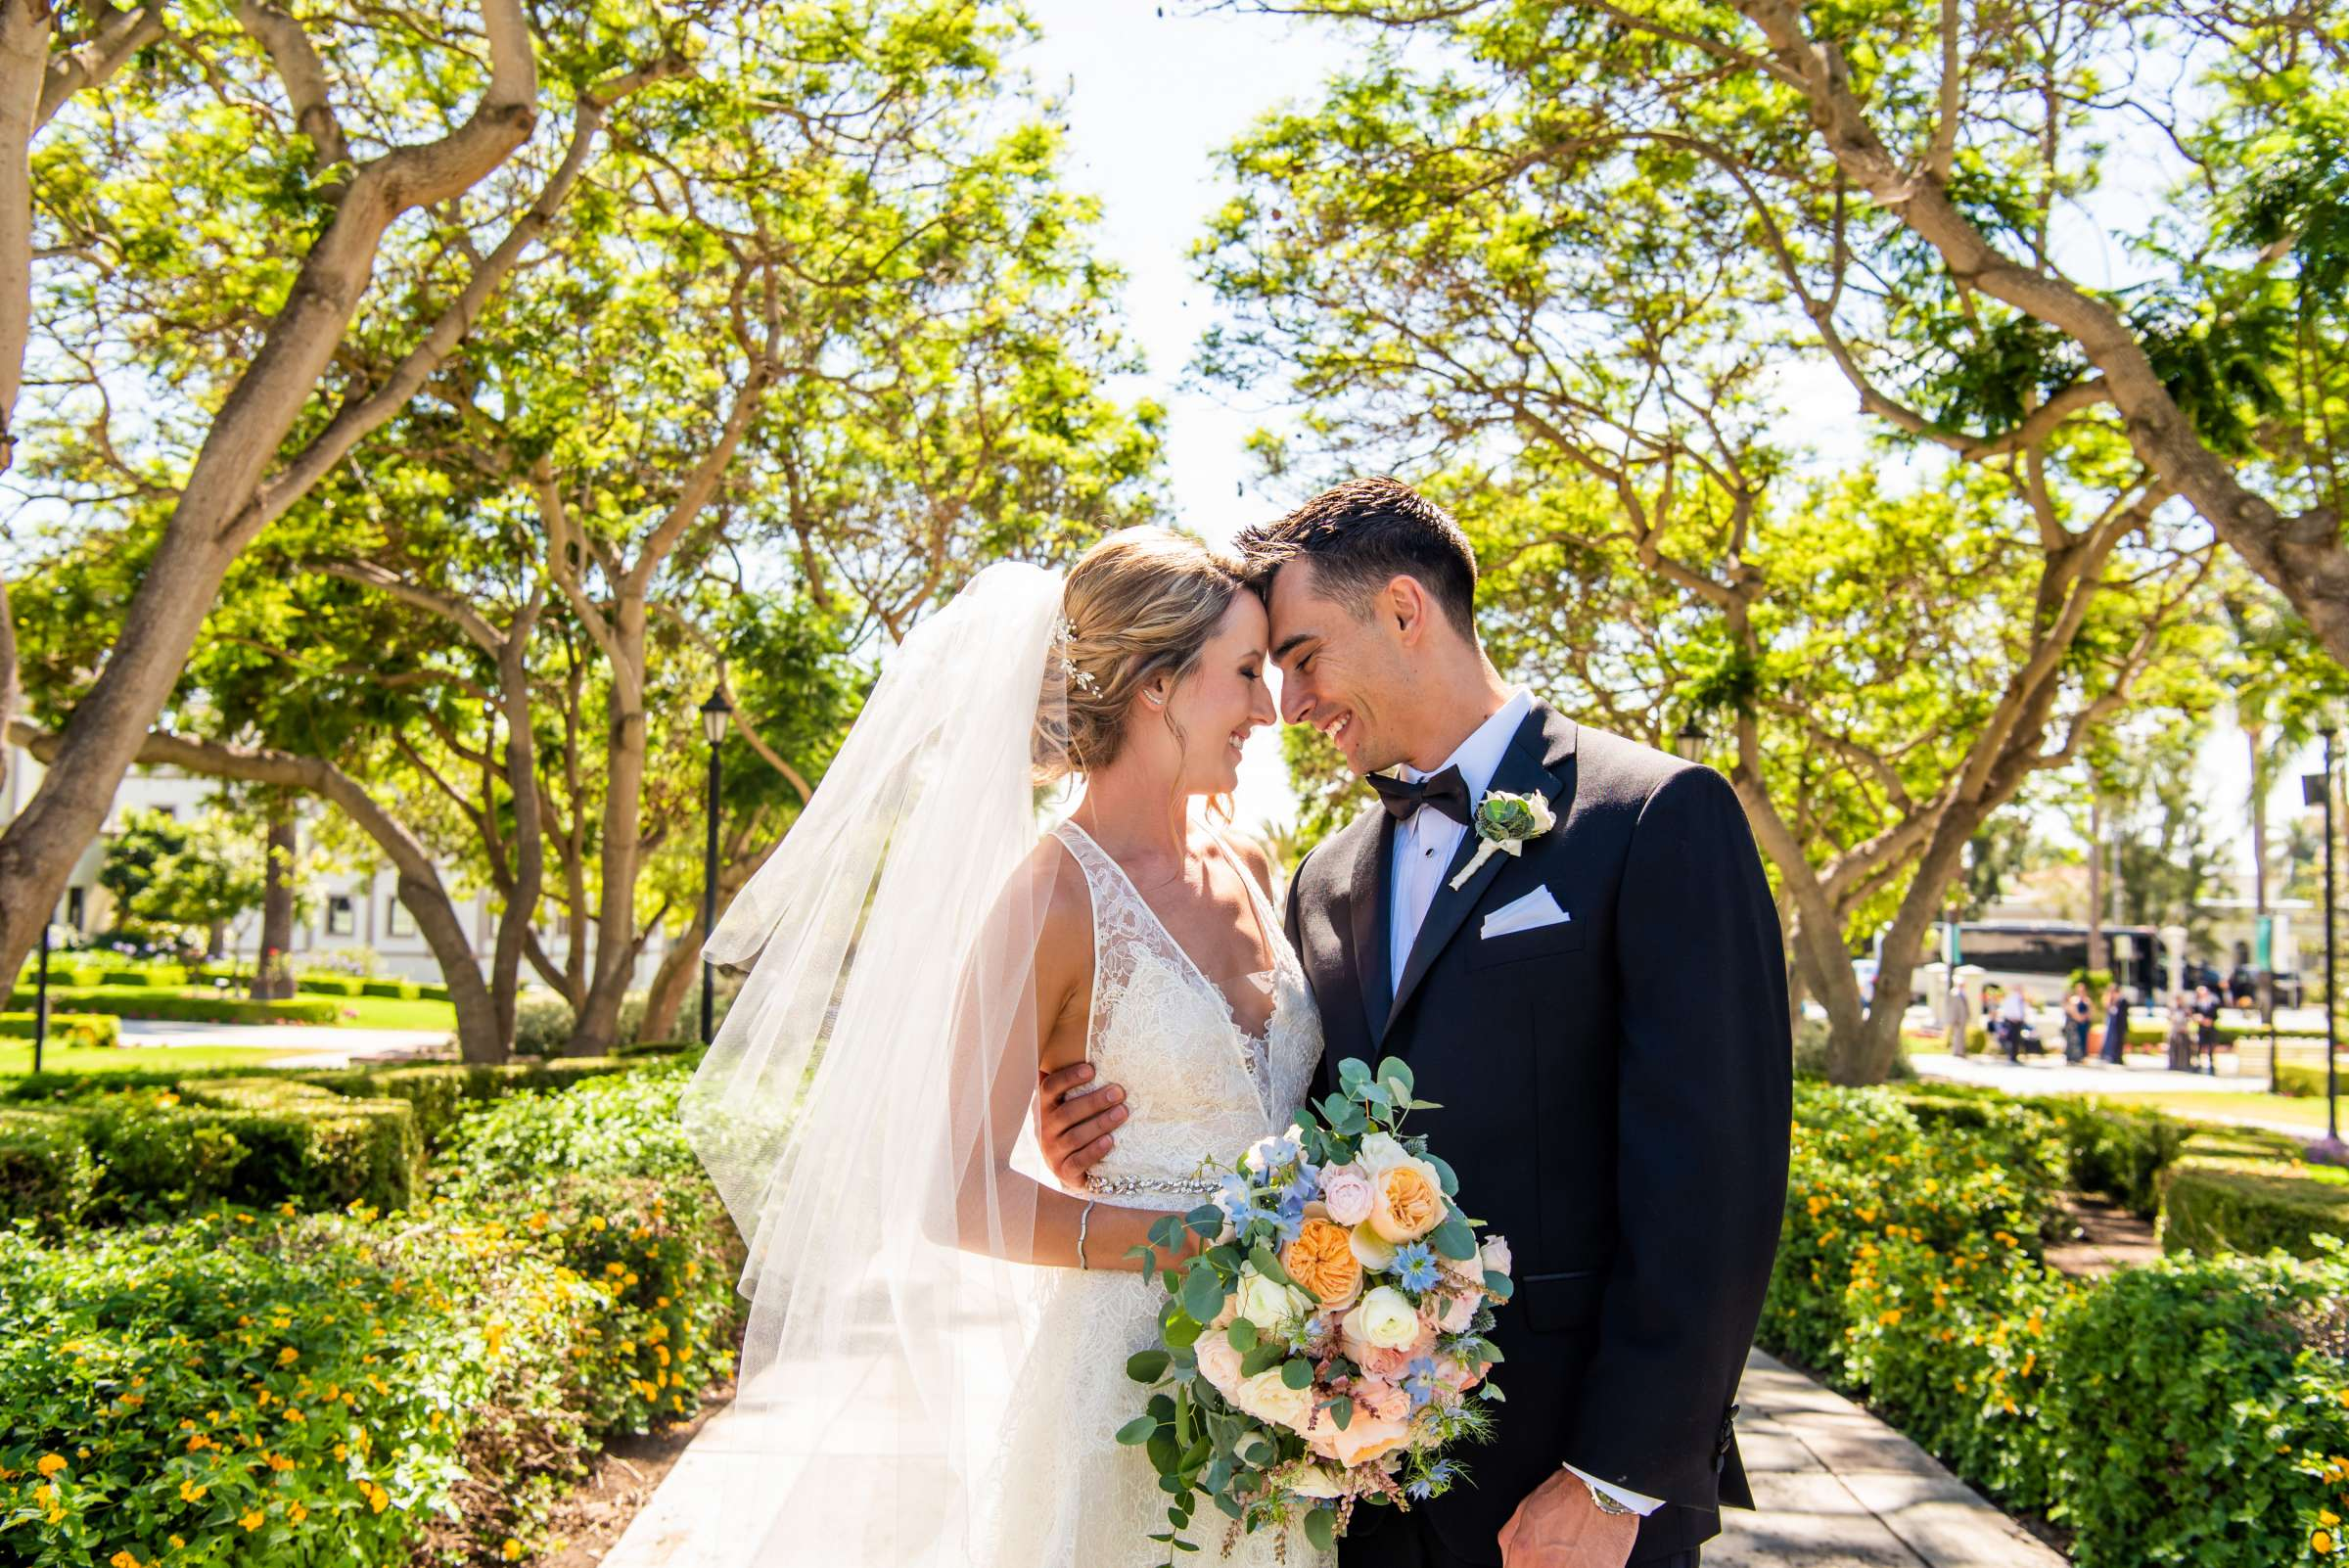 The Prado Wedding coordinated by Bliss Events, Sara and Marvin Wedding Photo #559471 by True Photography